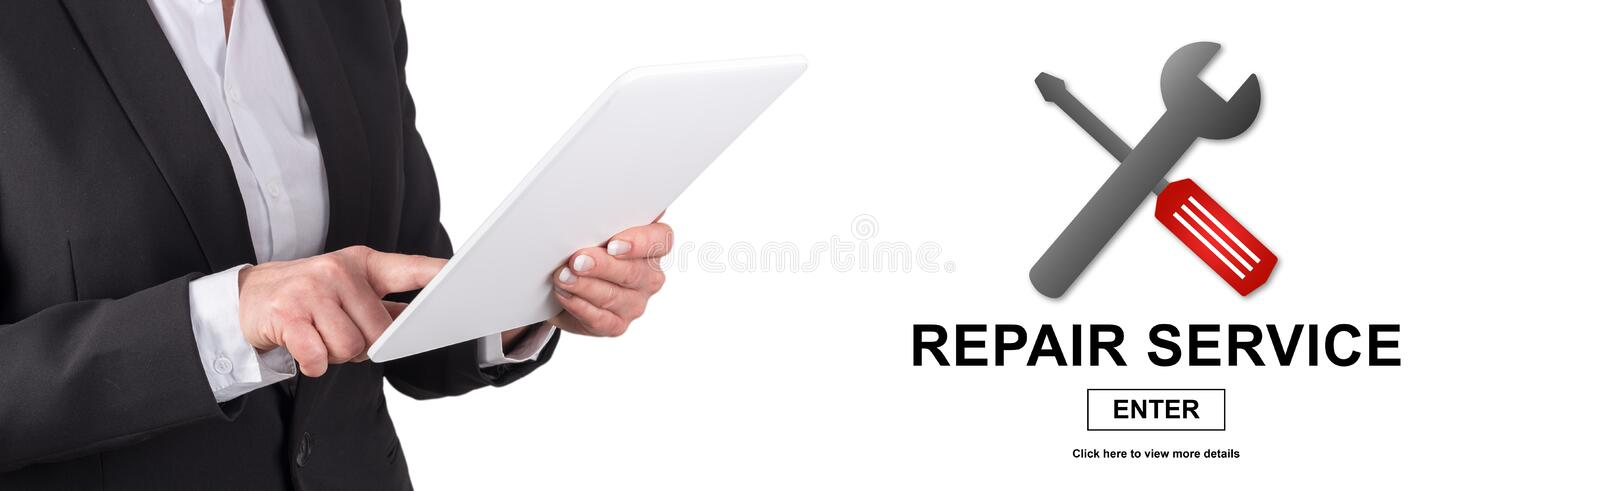 Concept of repair service stock photography